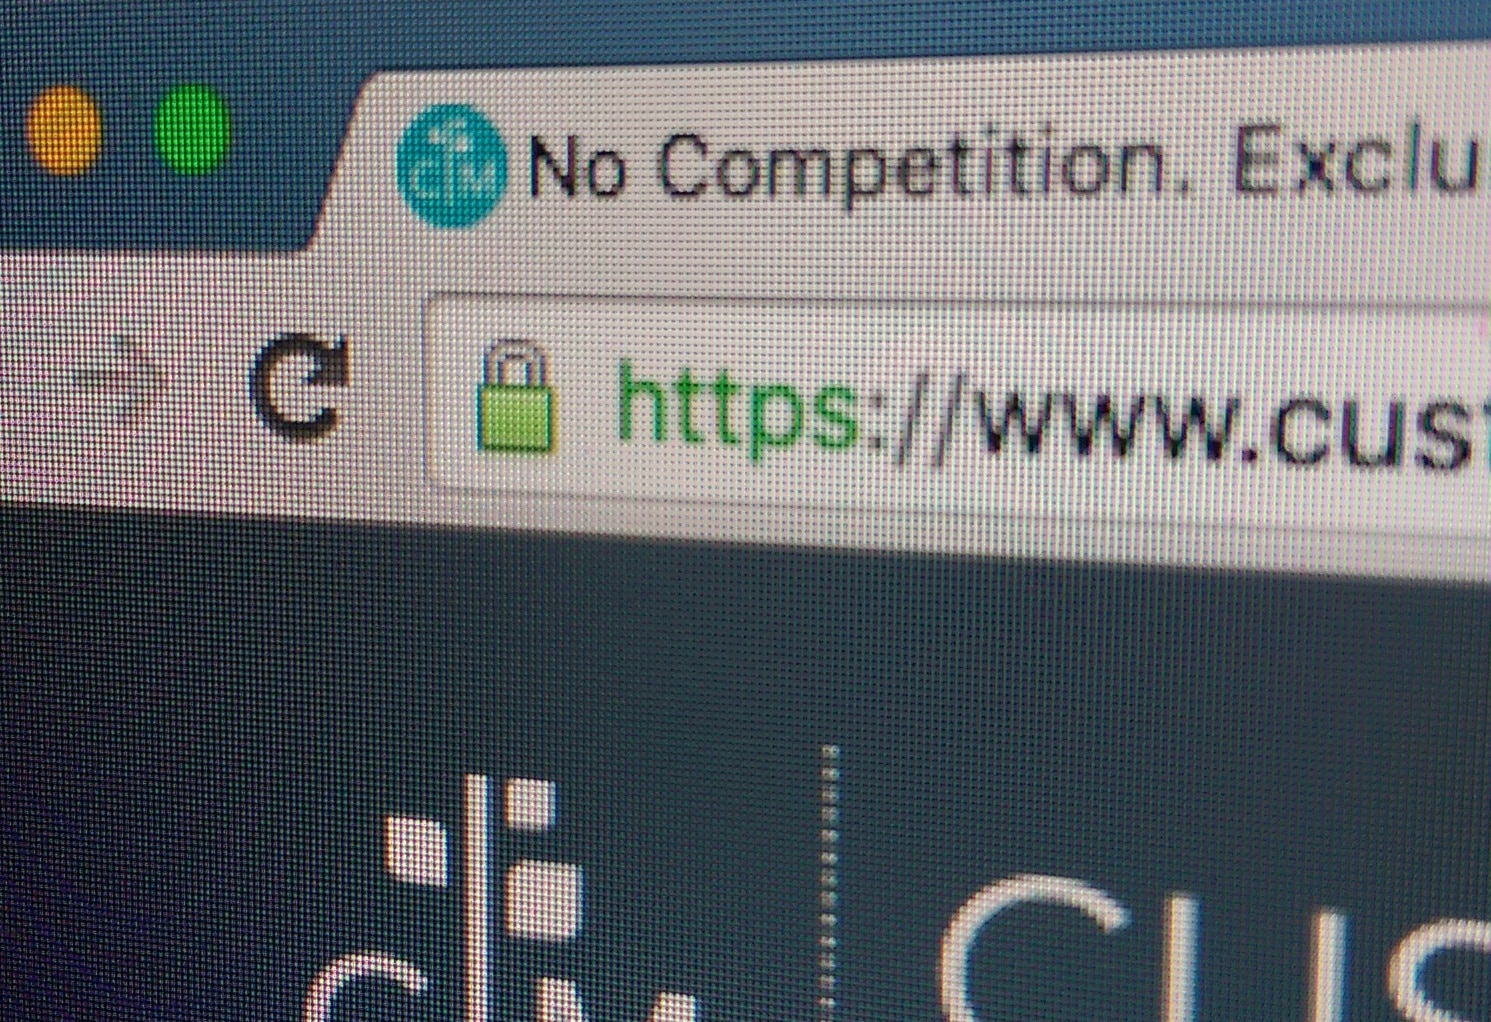 HTTPS is taking over Google search results: Are law firms keeping up?